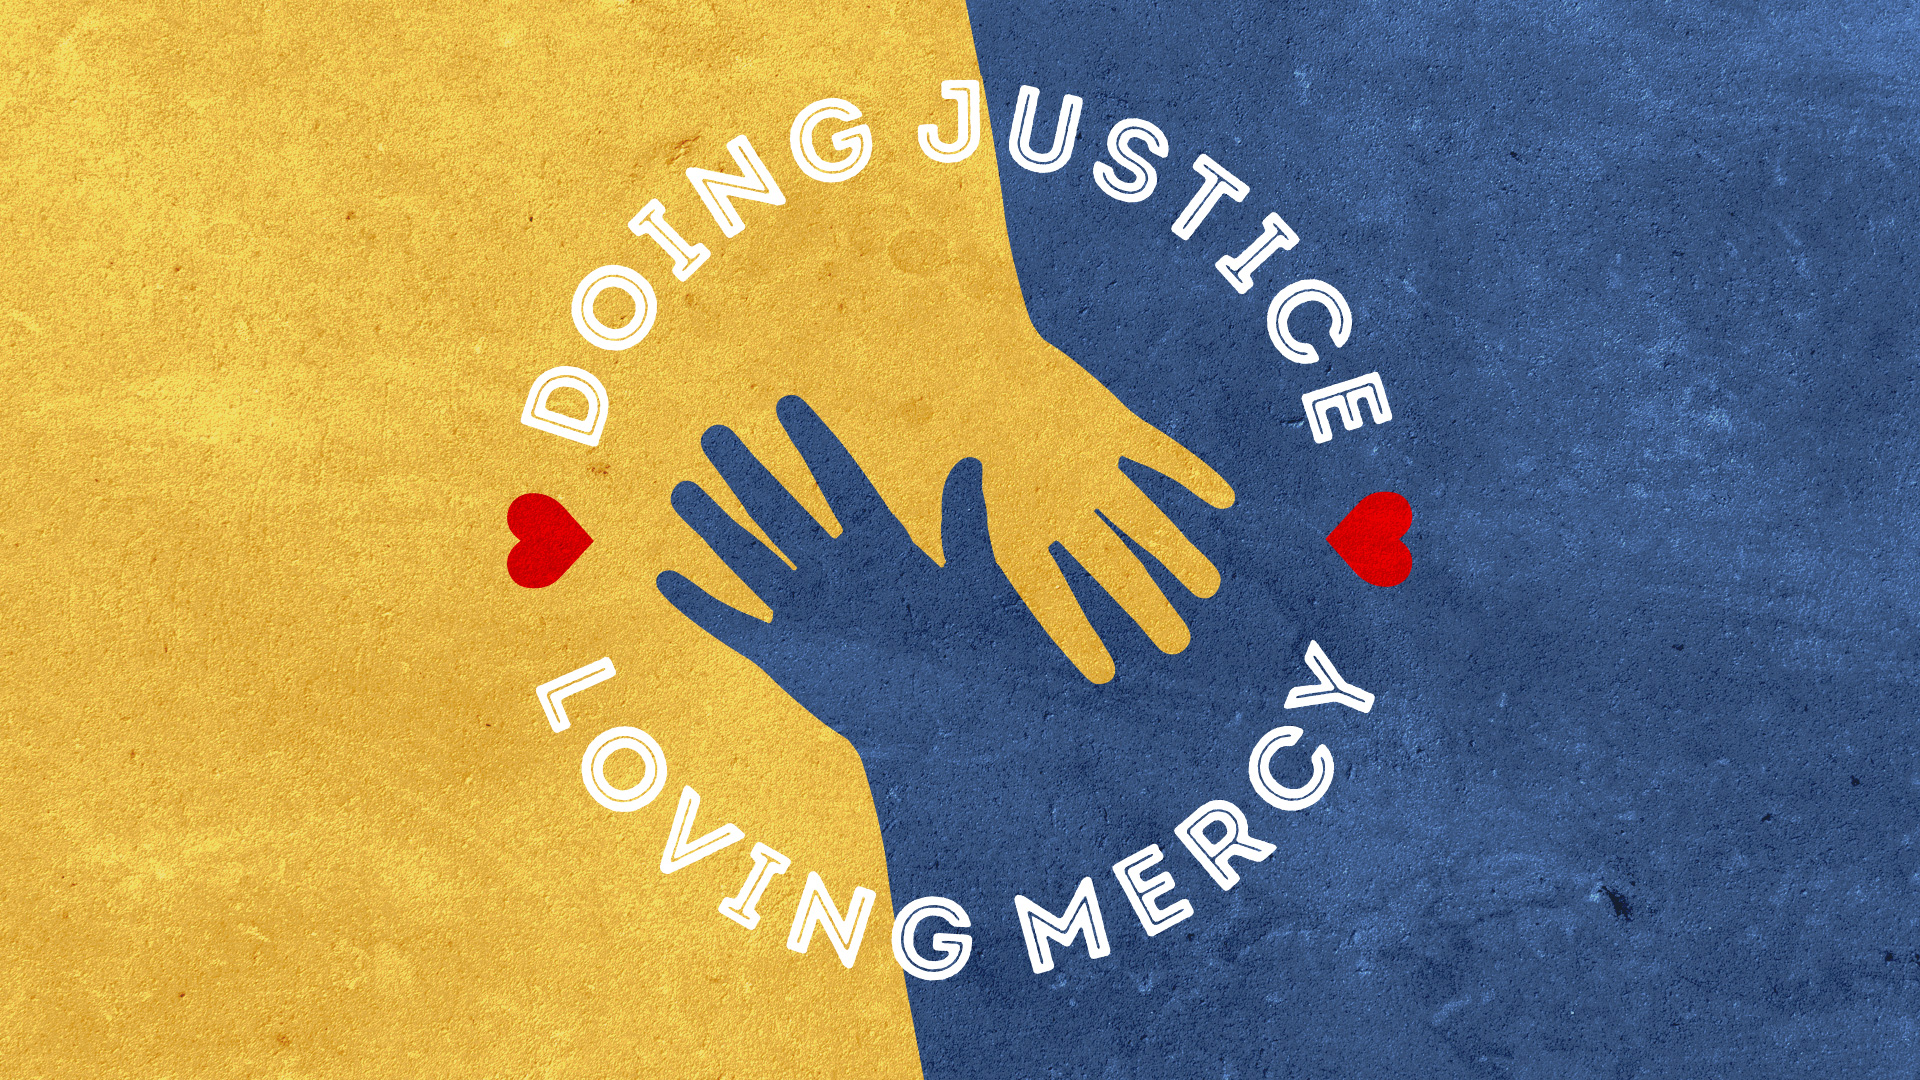 Doing Justice, Loving Mercy